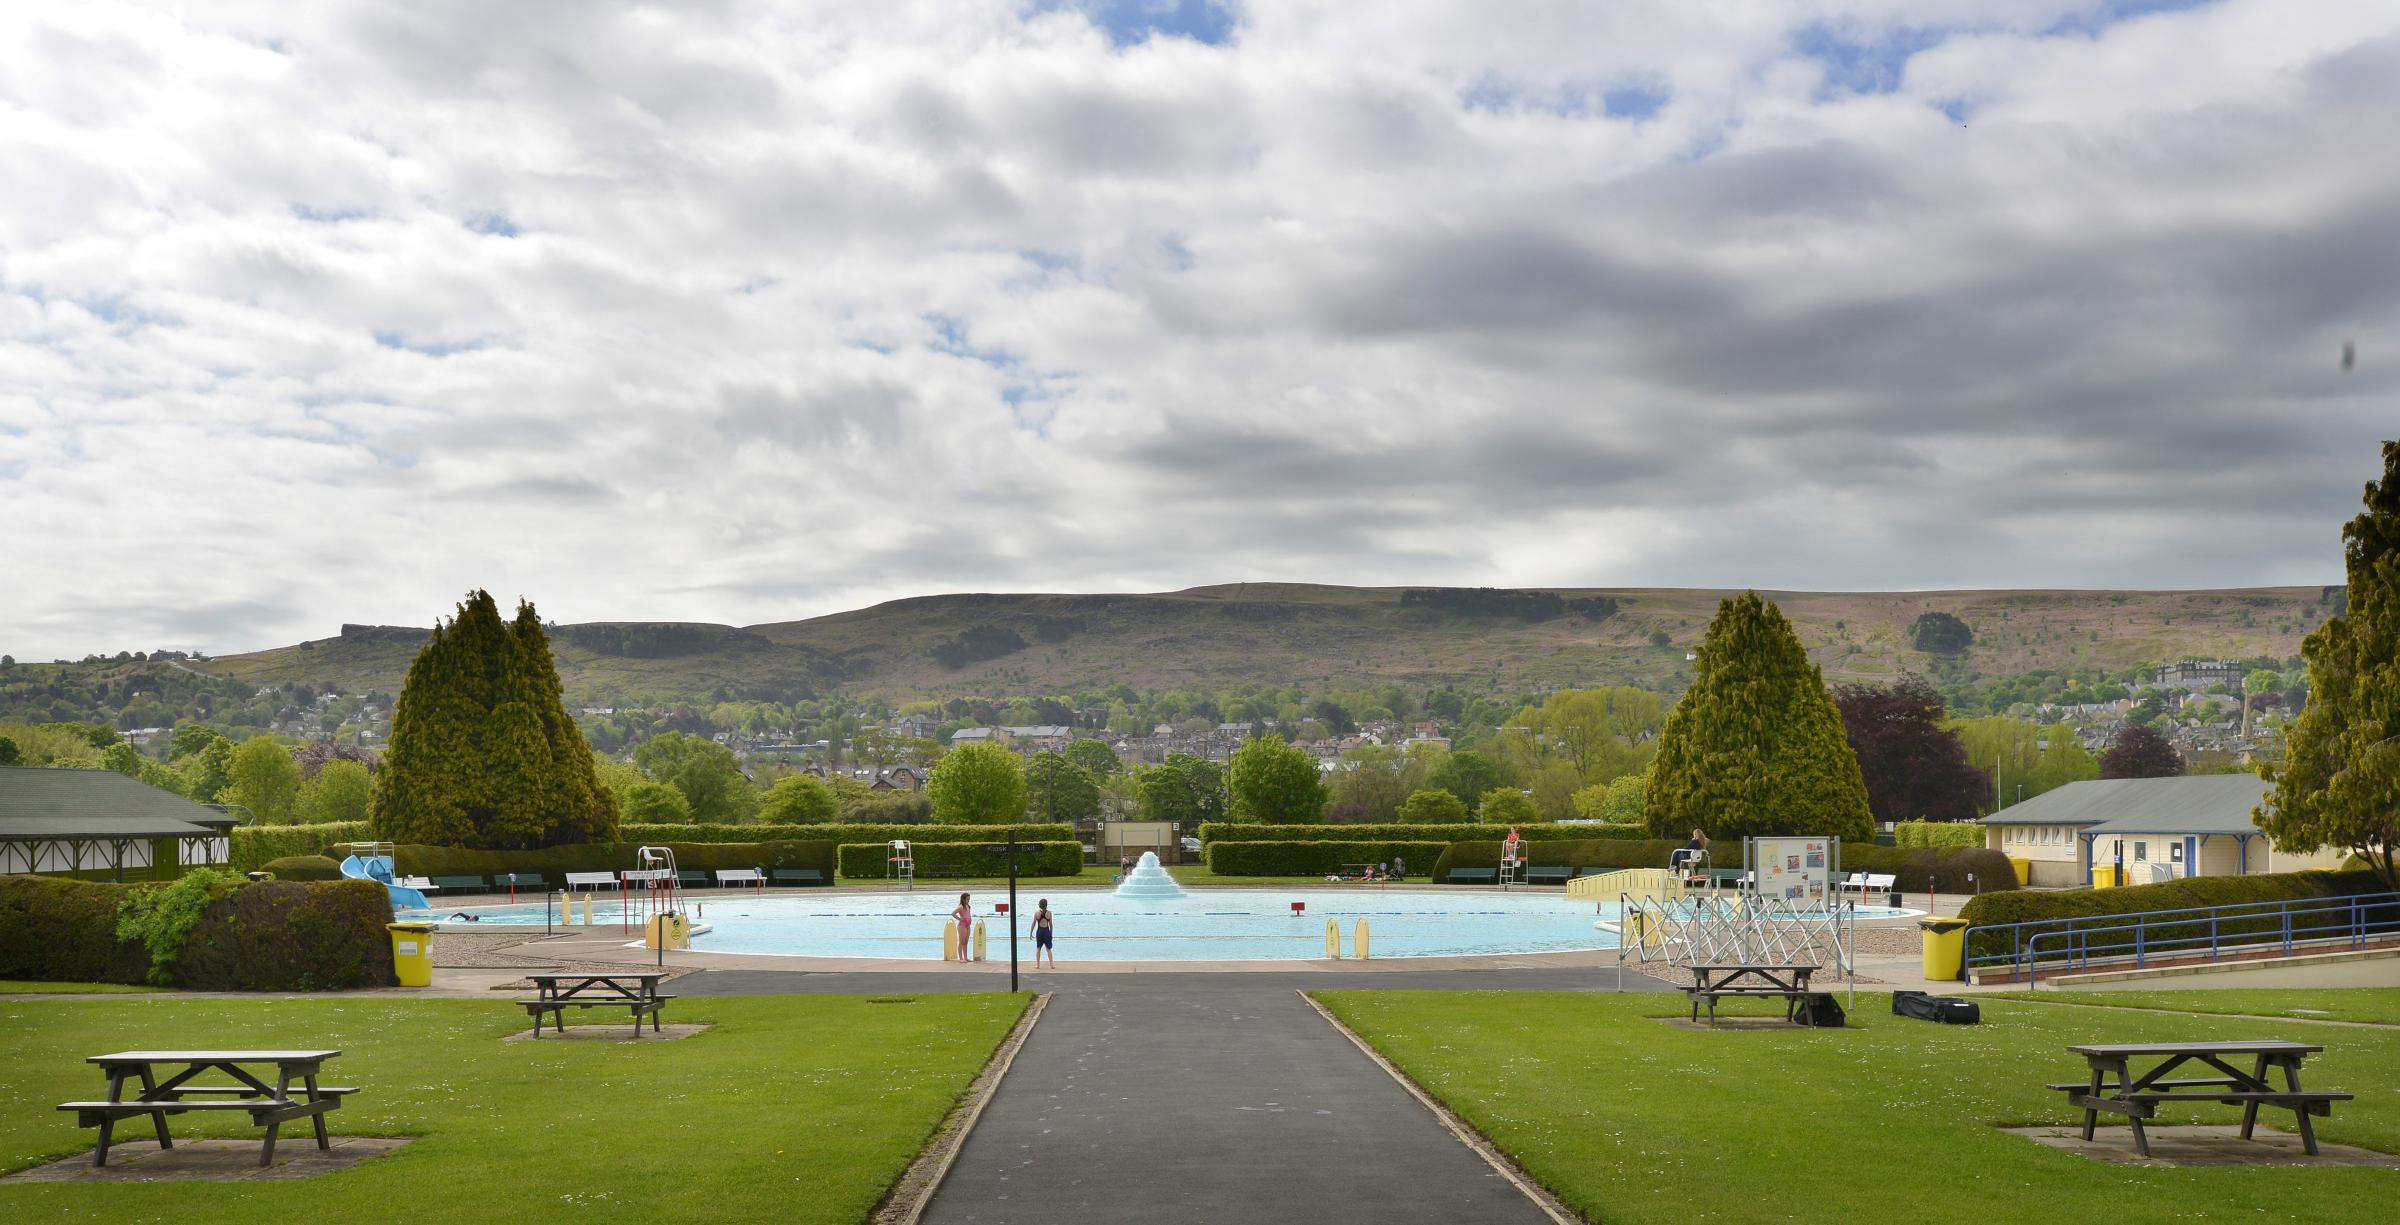 Sumer kicked off at Ilkley Lido this weekend but was tempered by a chilly which blew down from the moors putting off the predicted larger crowd of people..